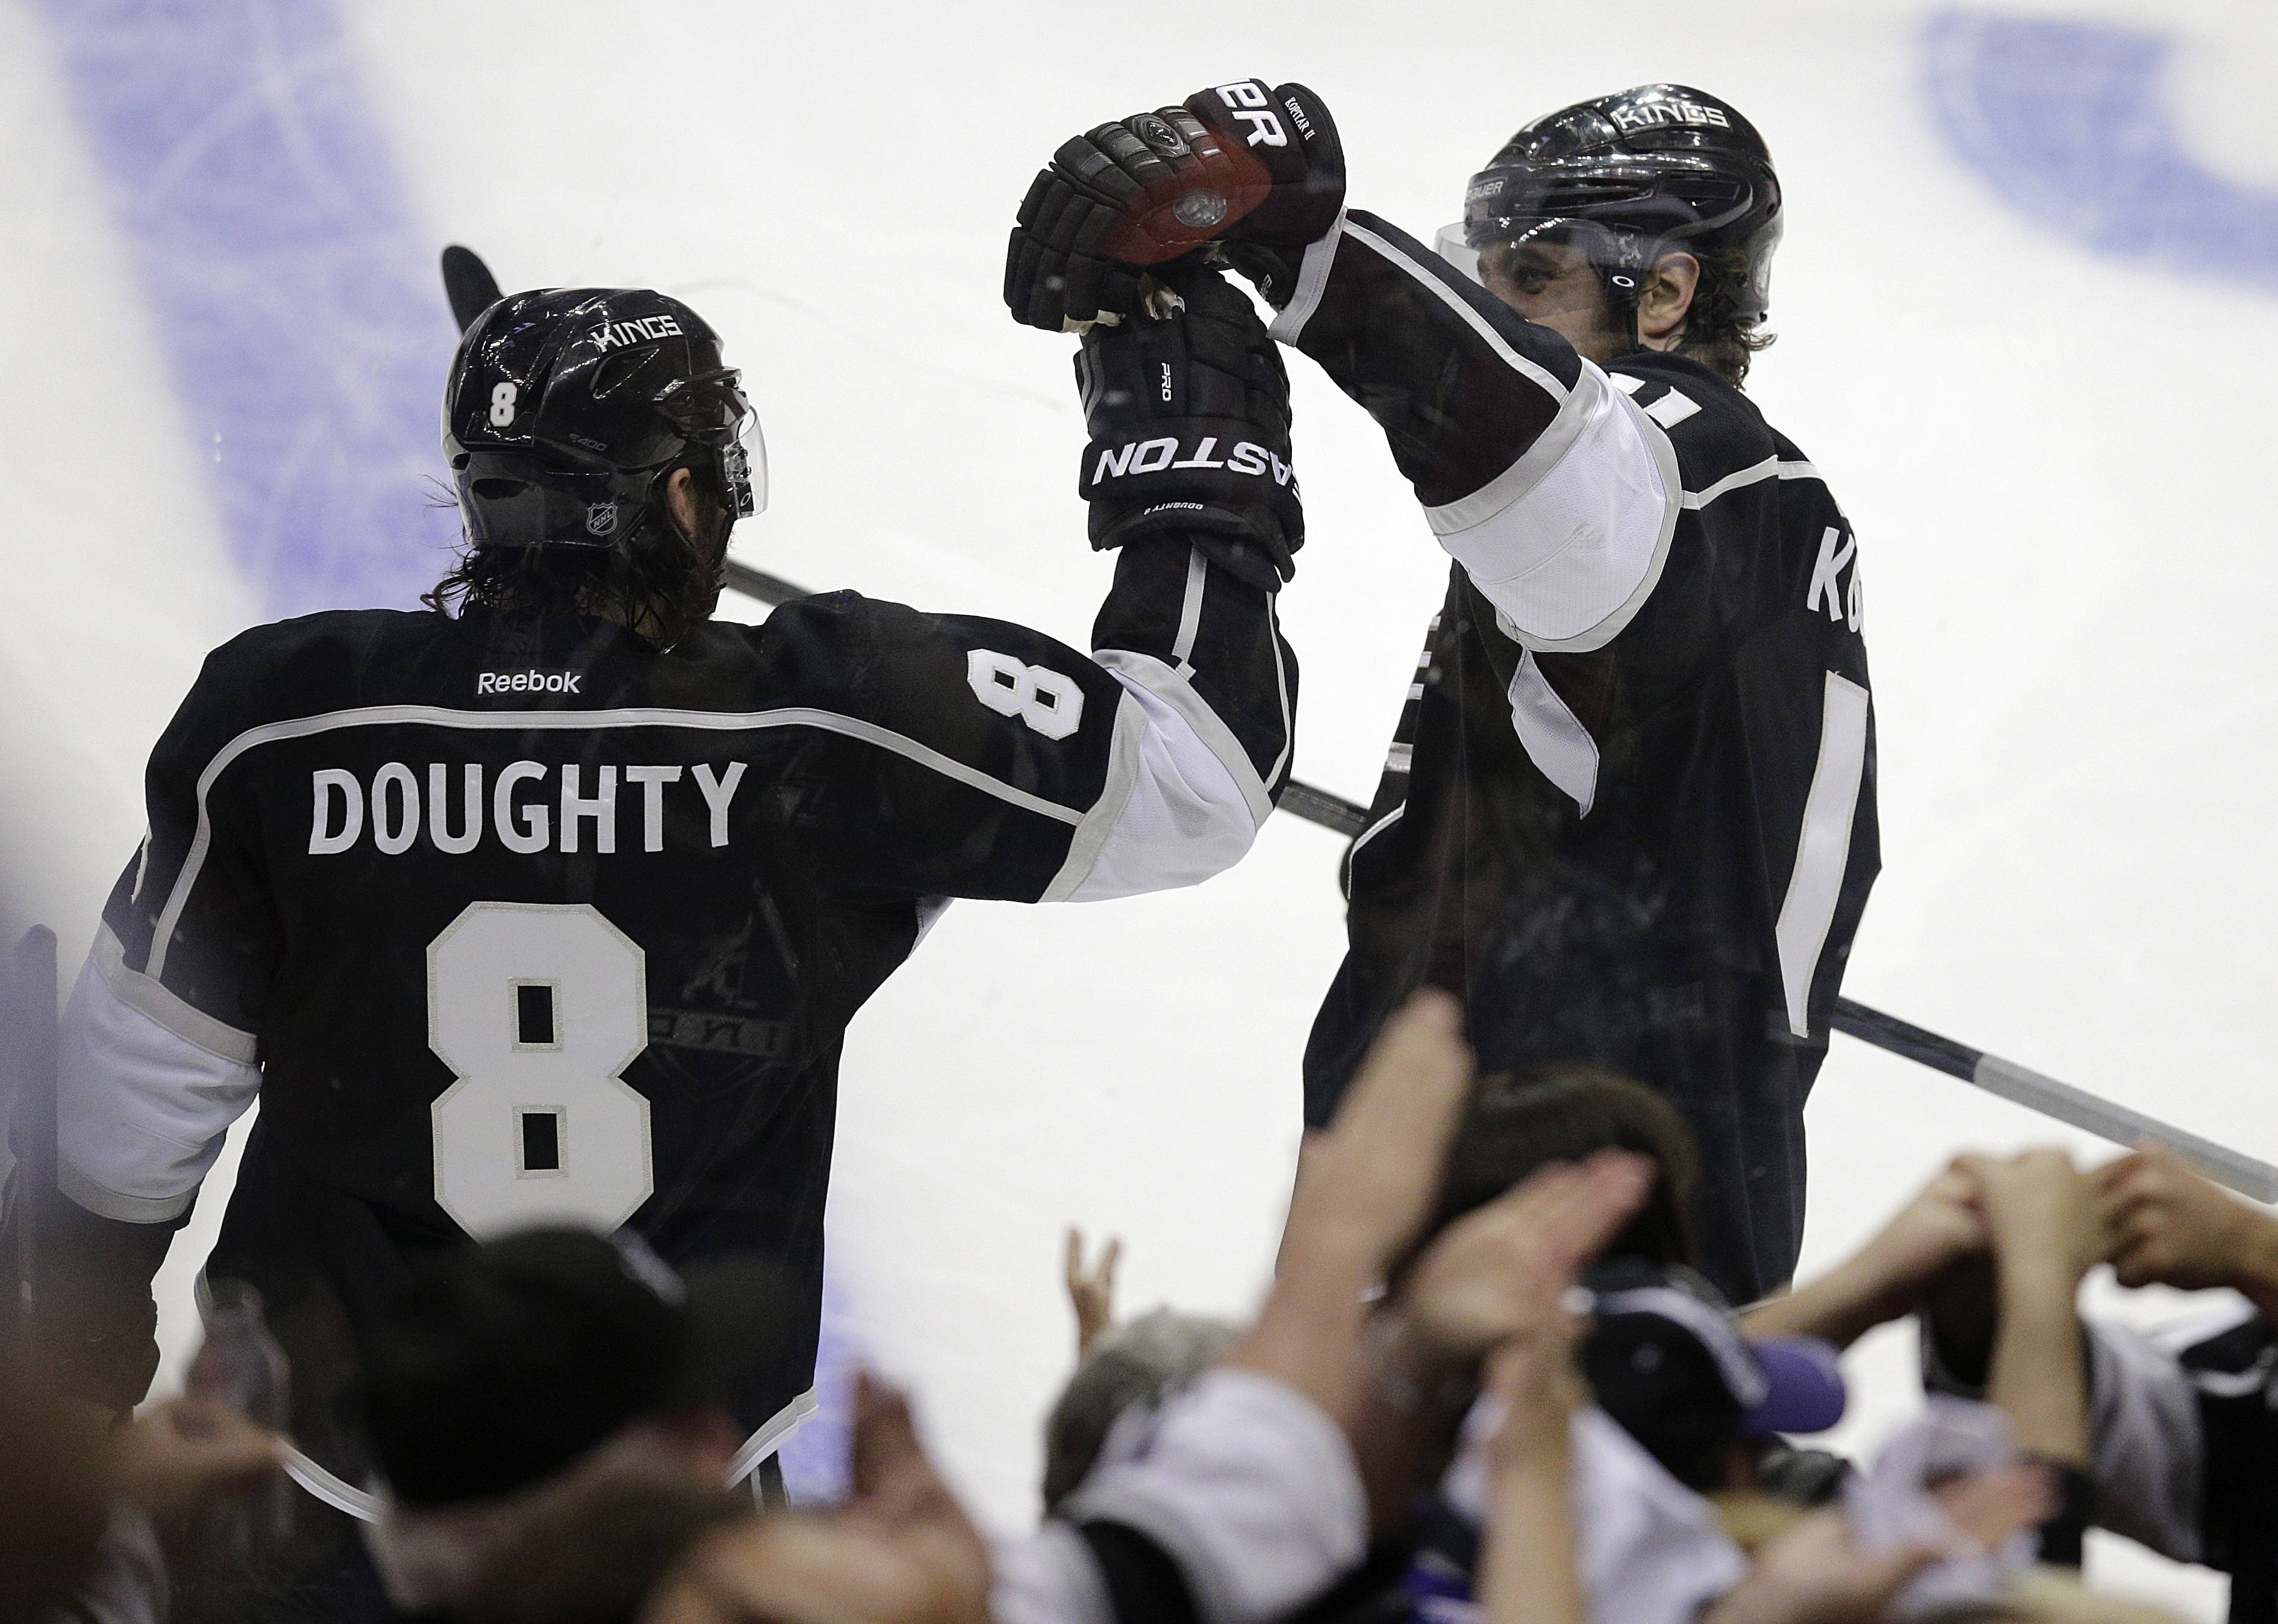 Los Angeles Kings' Drew Doughty, left, is congratulated by Anze Kopitar, of Slovenia, after scoring against the Chicago Blackhawks during the second period of Game 4 of the Western Conference finals of the NHL hockey Stanley Cup playoffs on Monday, May 26, 2014, in Los Angeles.